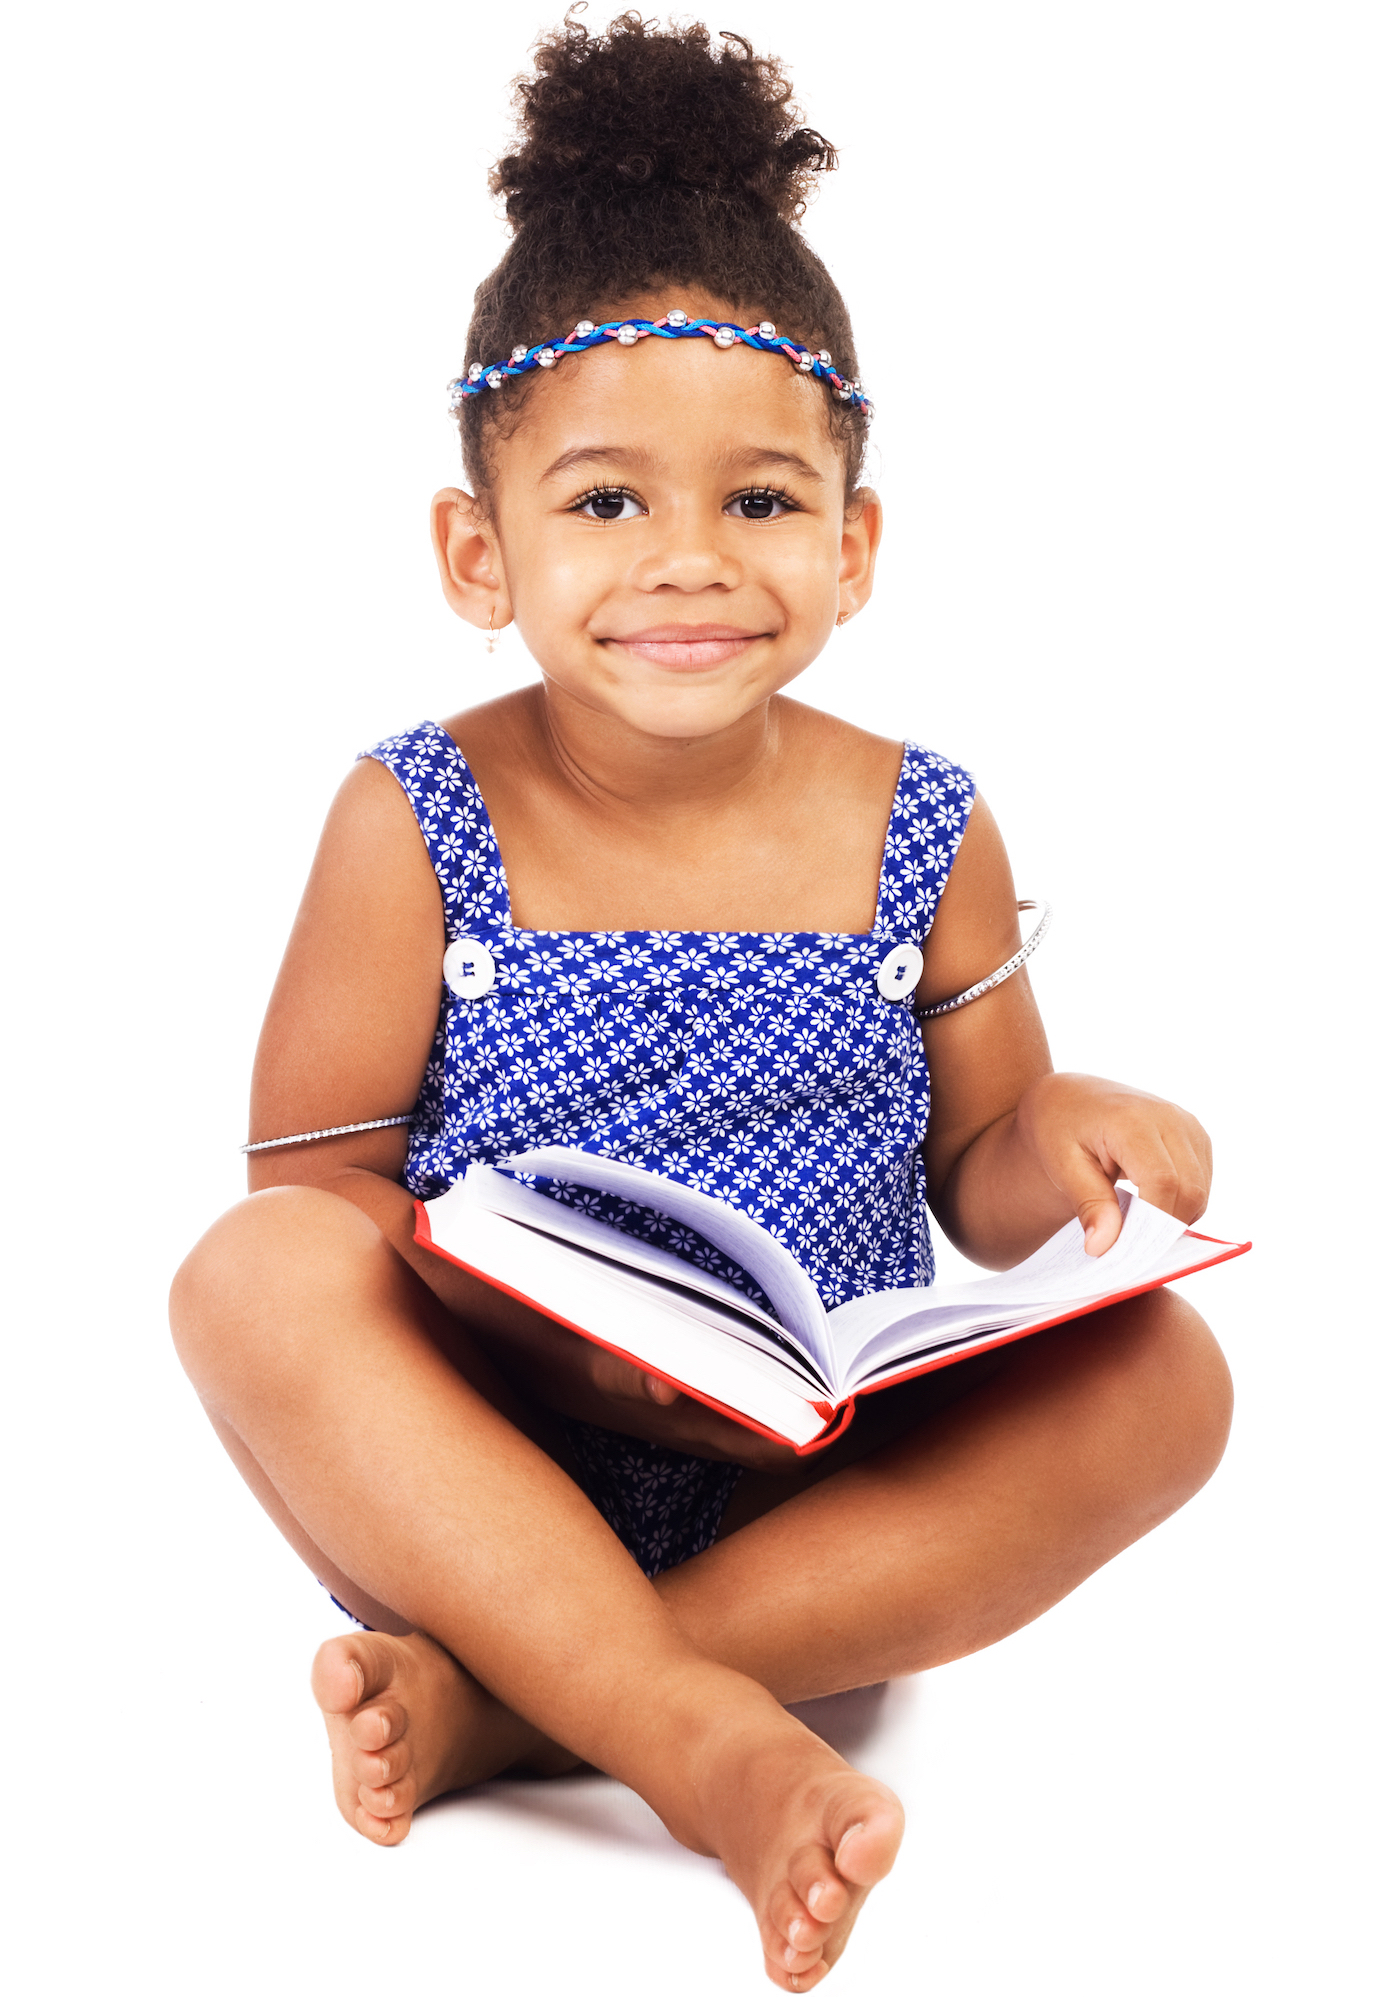 4 Natural Hair Books Your Child Will Love | Curls Understood